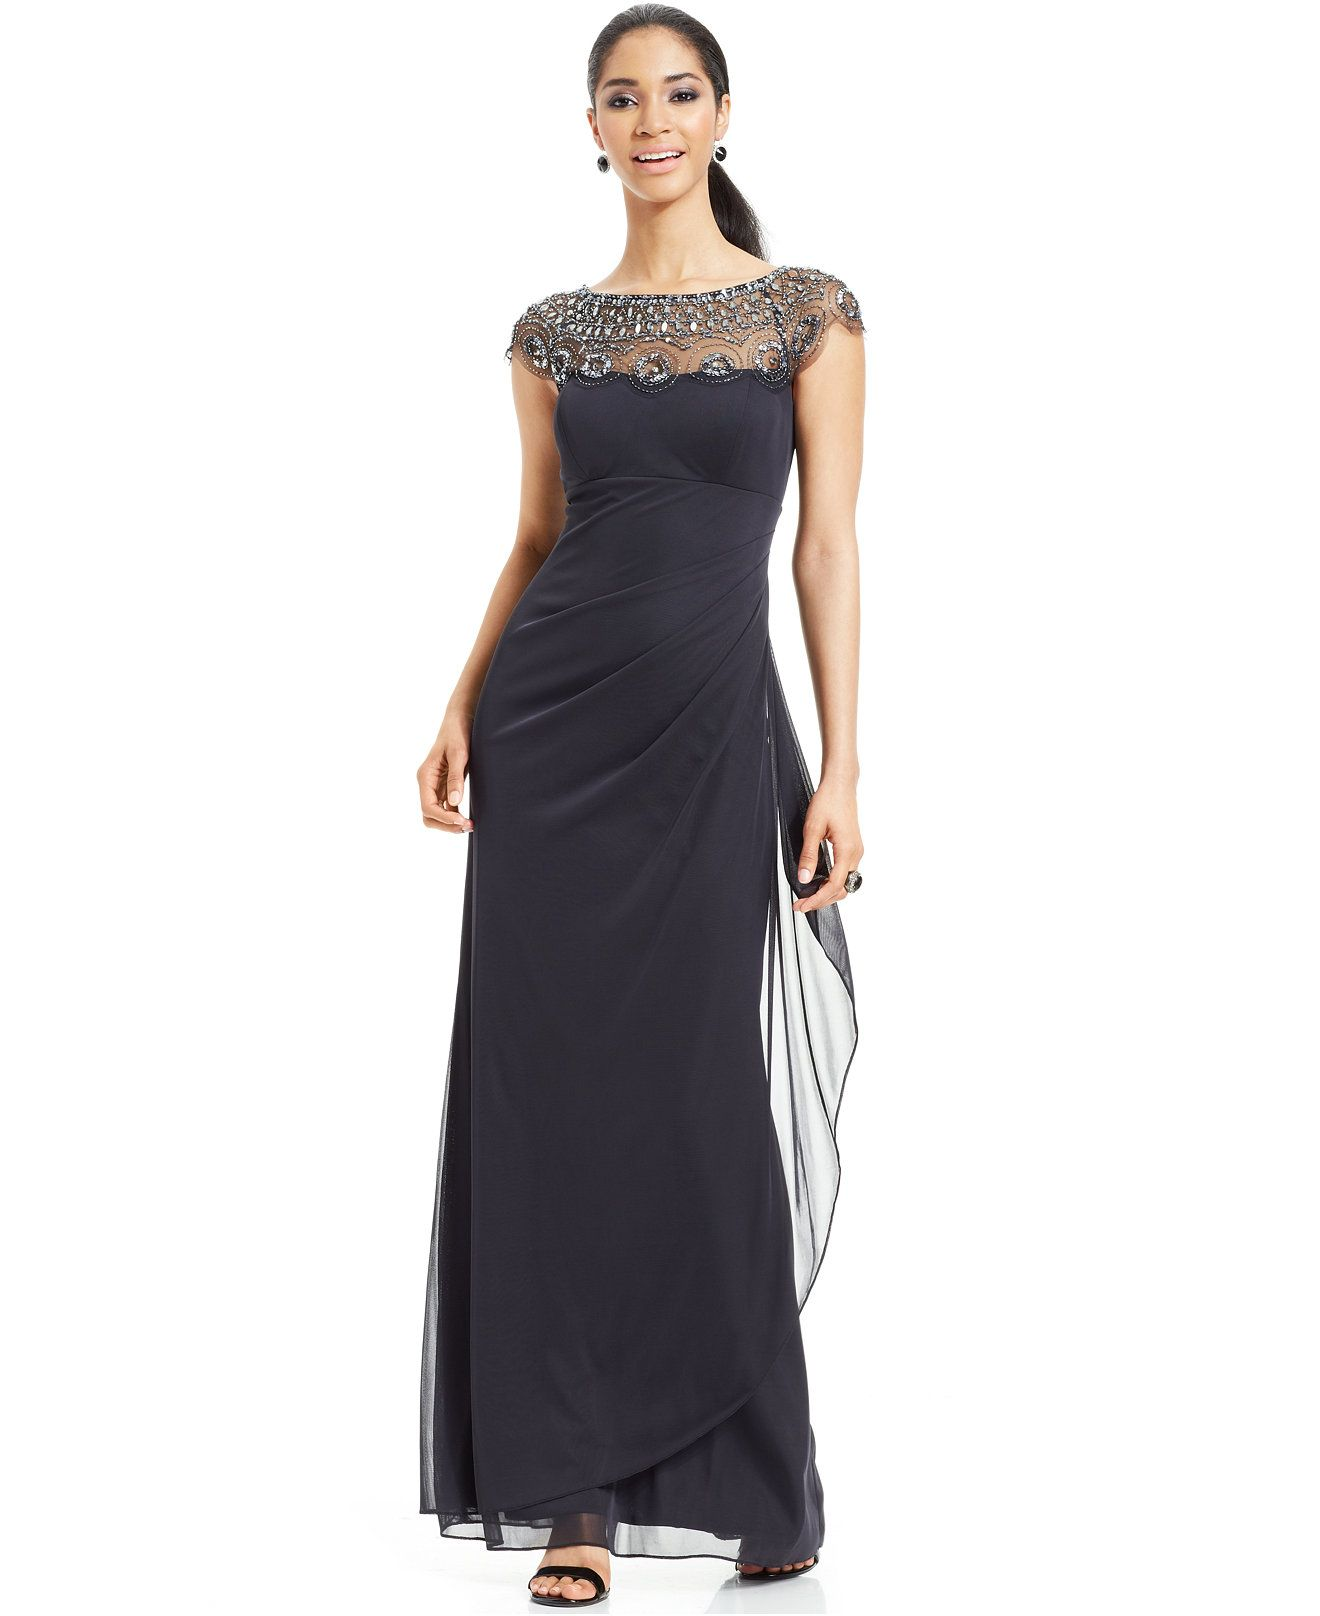 139562a34 Xscape Cap-Sleeve Illusion Beaded Gown - Dresses - Women - Macy's new dress  for wedding but knee length